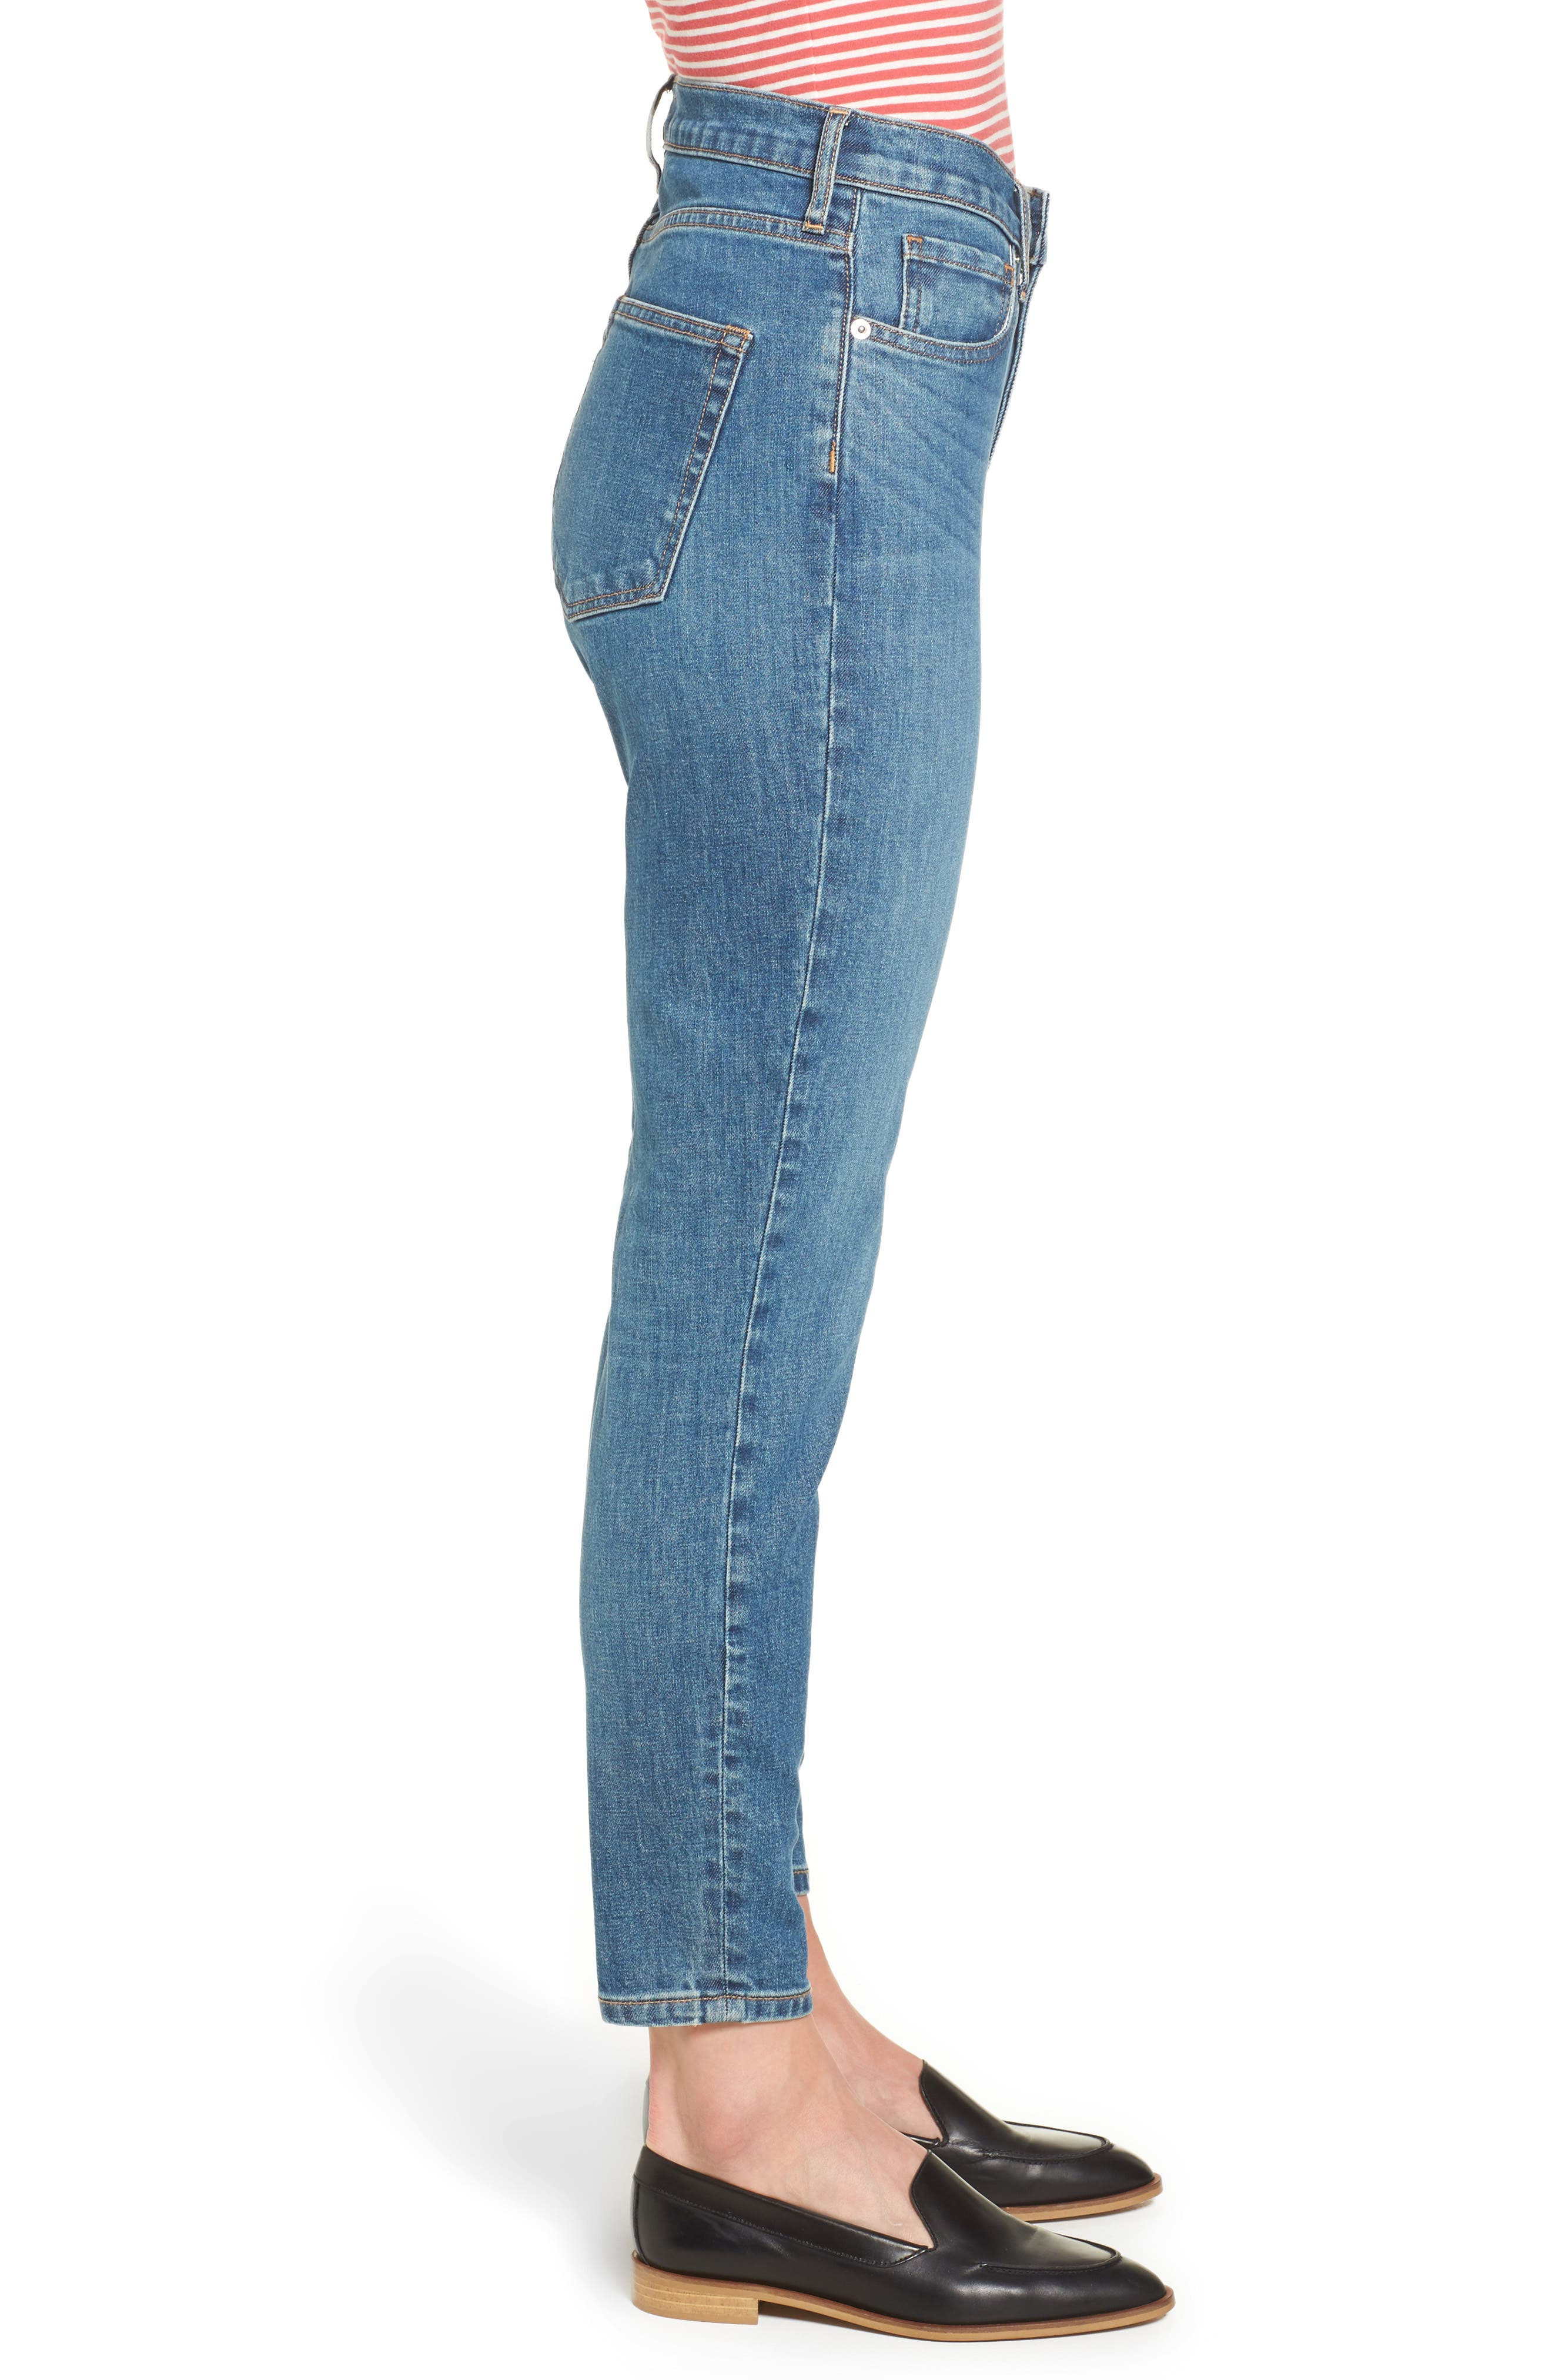 Alternate Image 3  - Everlane The High Rise Skinny Ankle Jeans